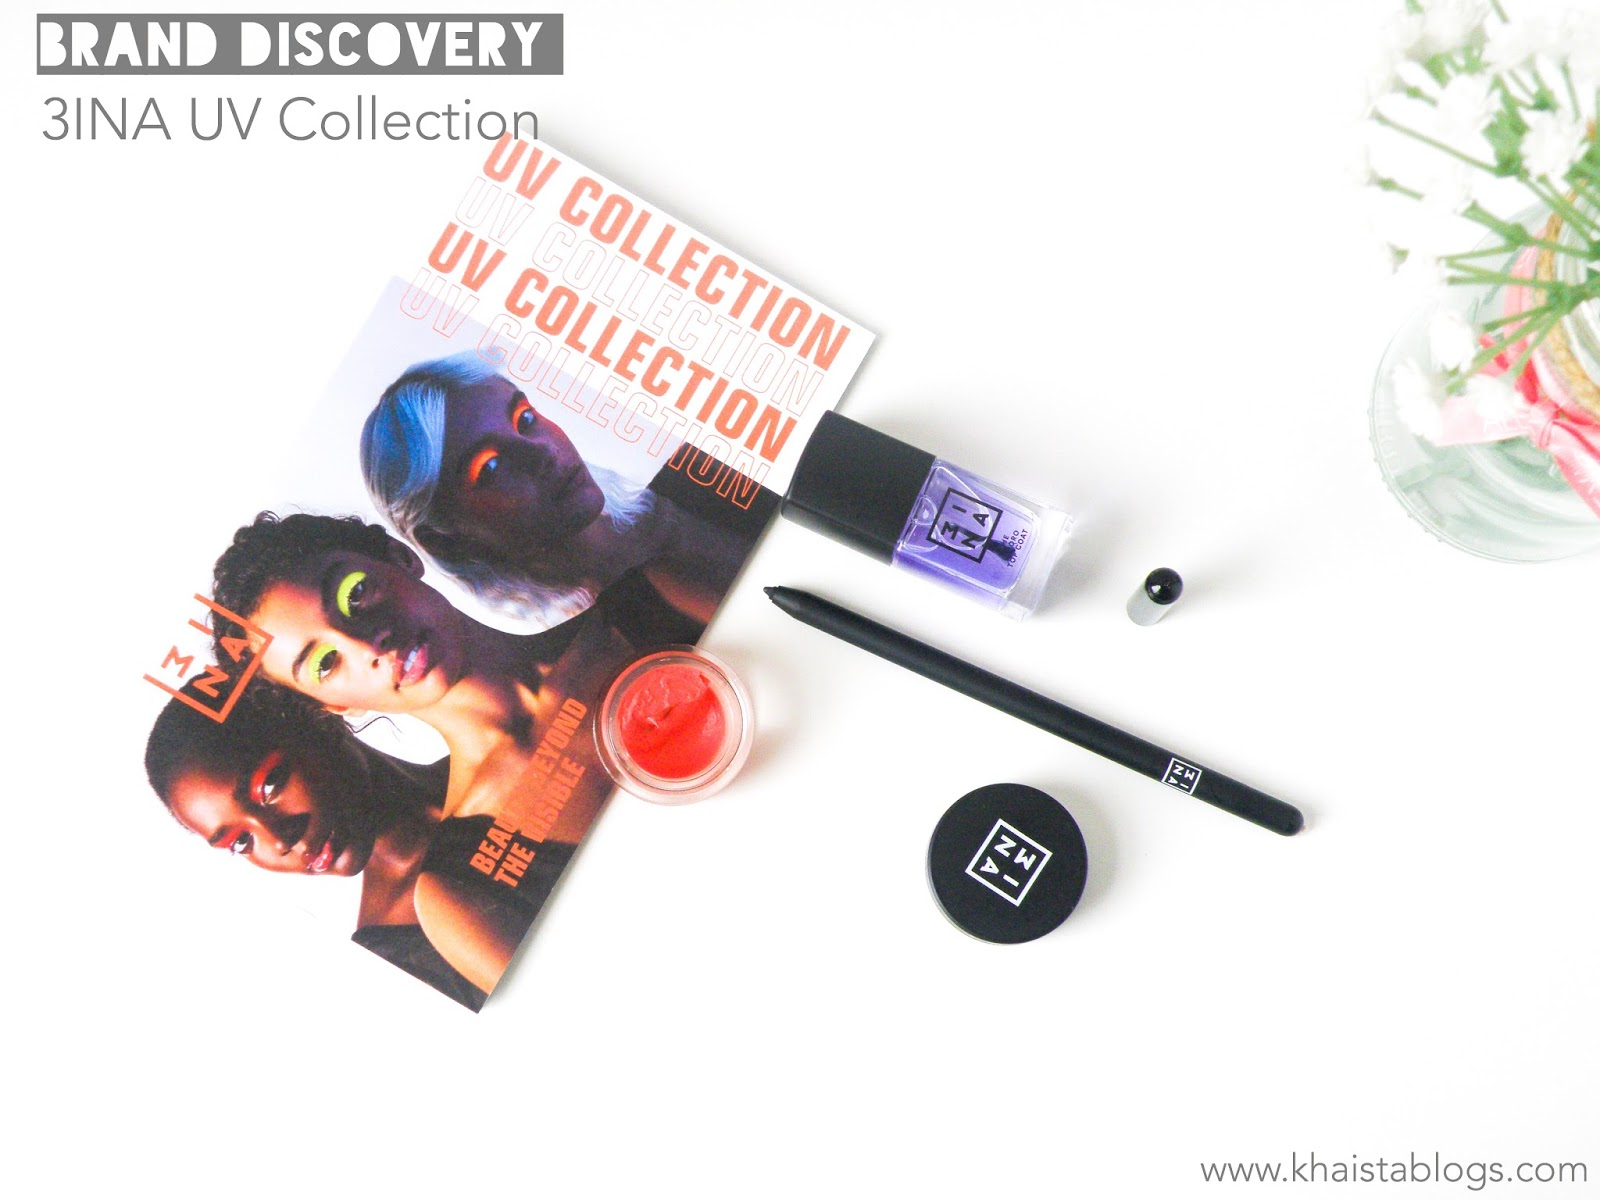 3ina uv makeup collection review